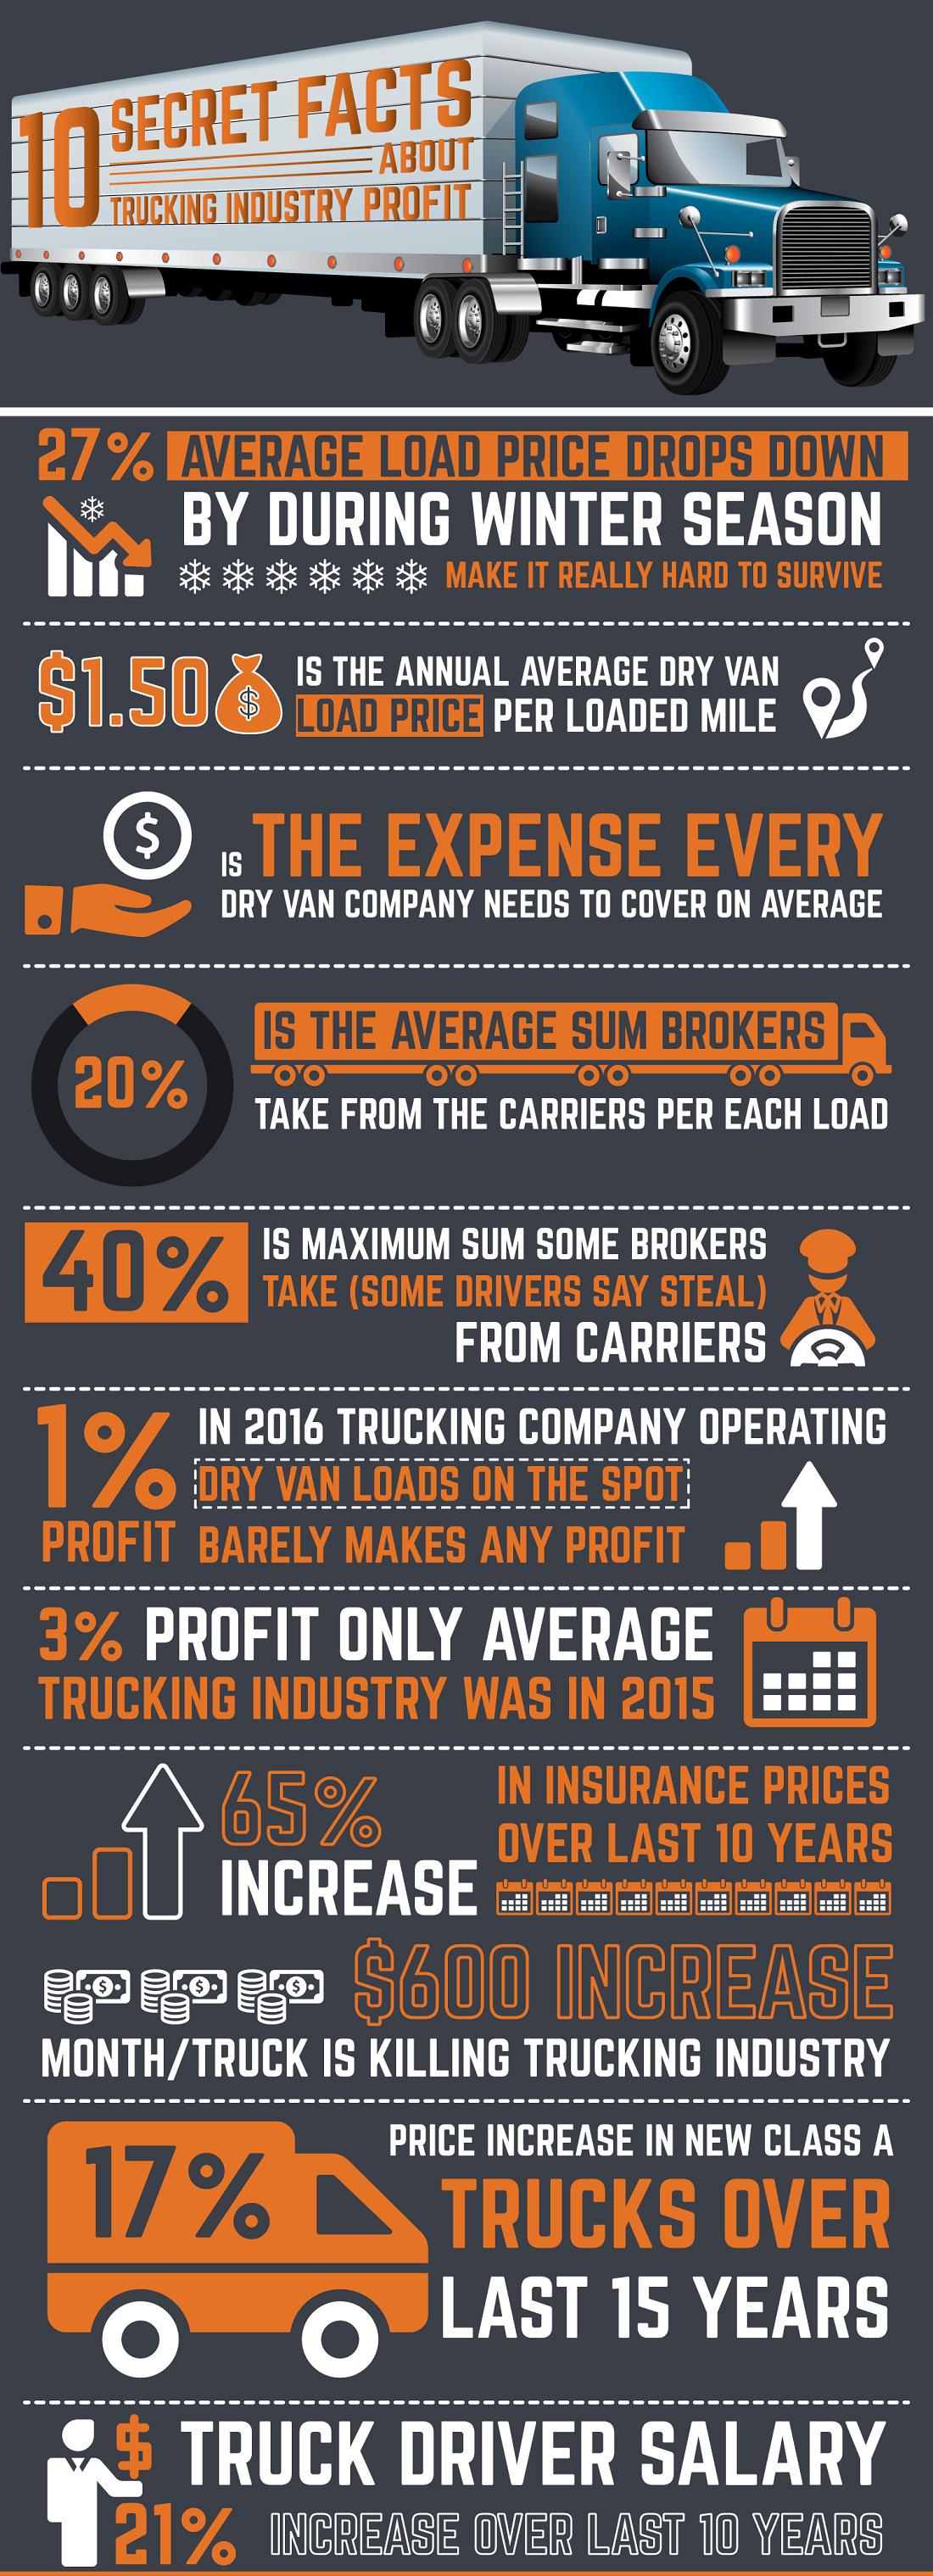 INFOGRAPHIC: 10 Secret Facts About Trucking Industry Profit